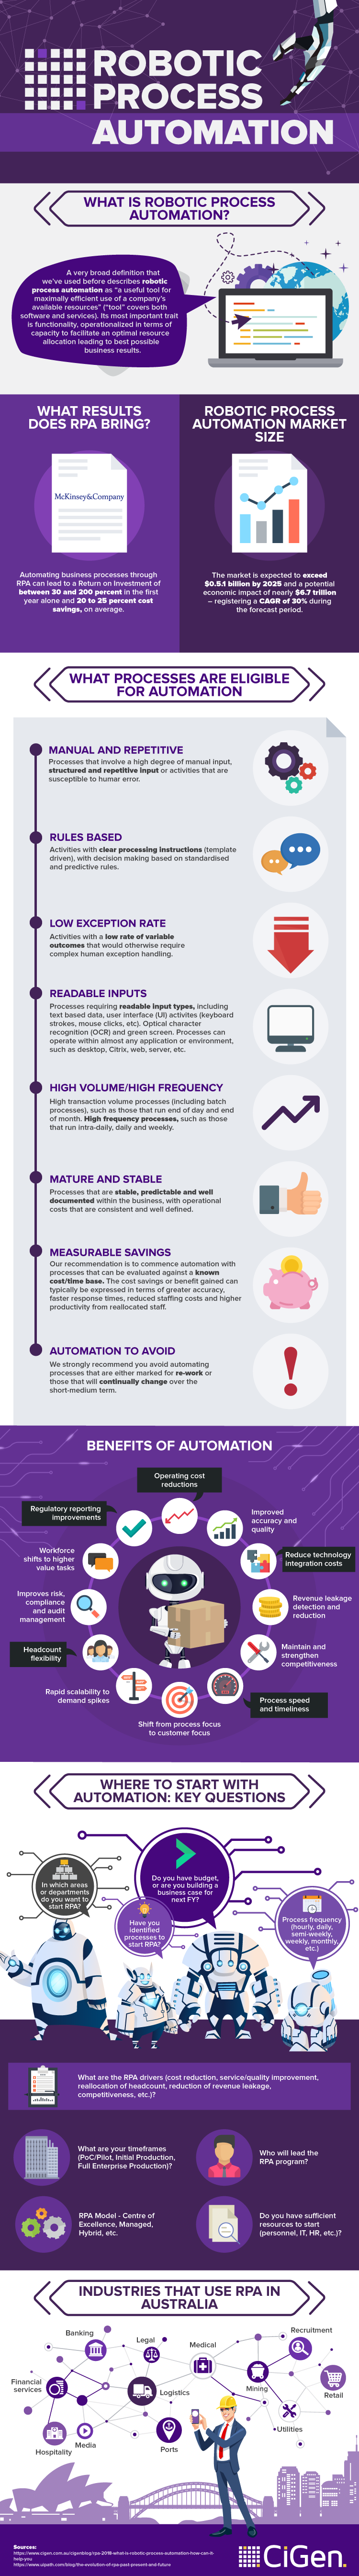 Robotic Process Automation - infographic